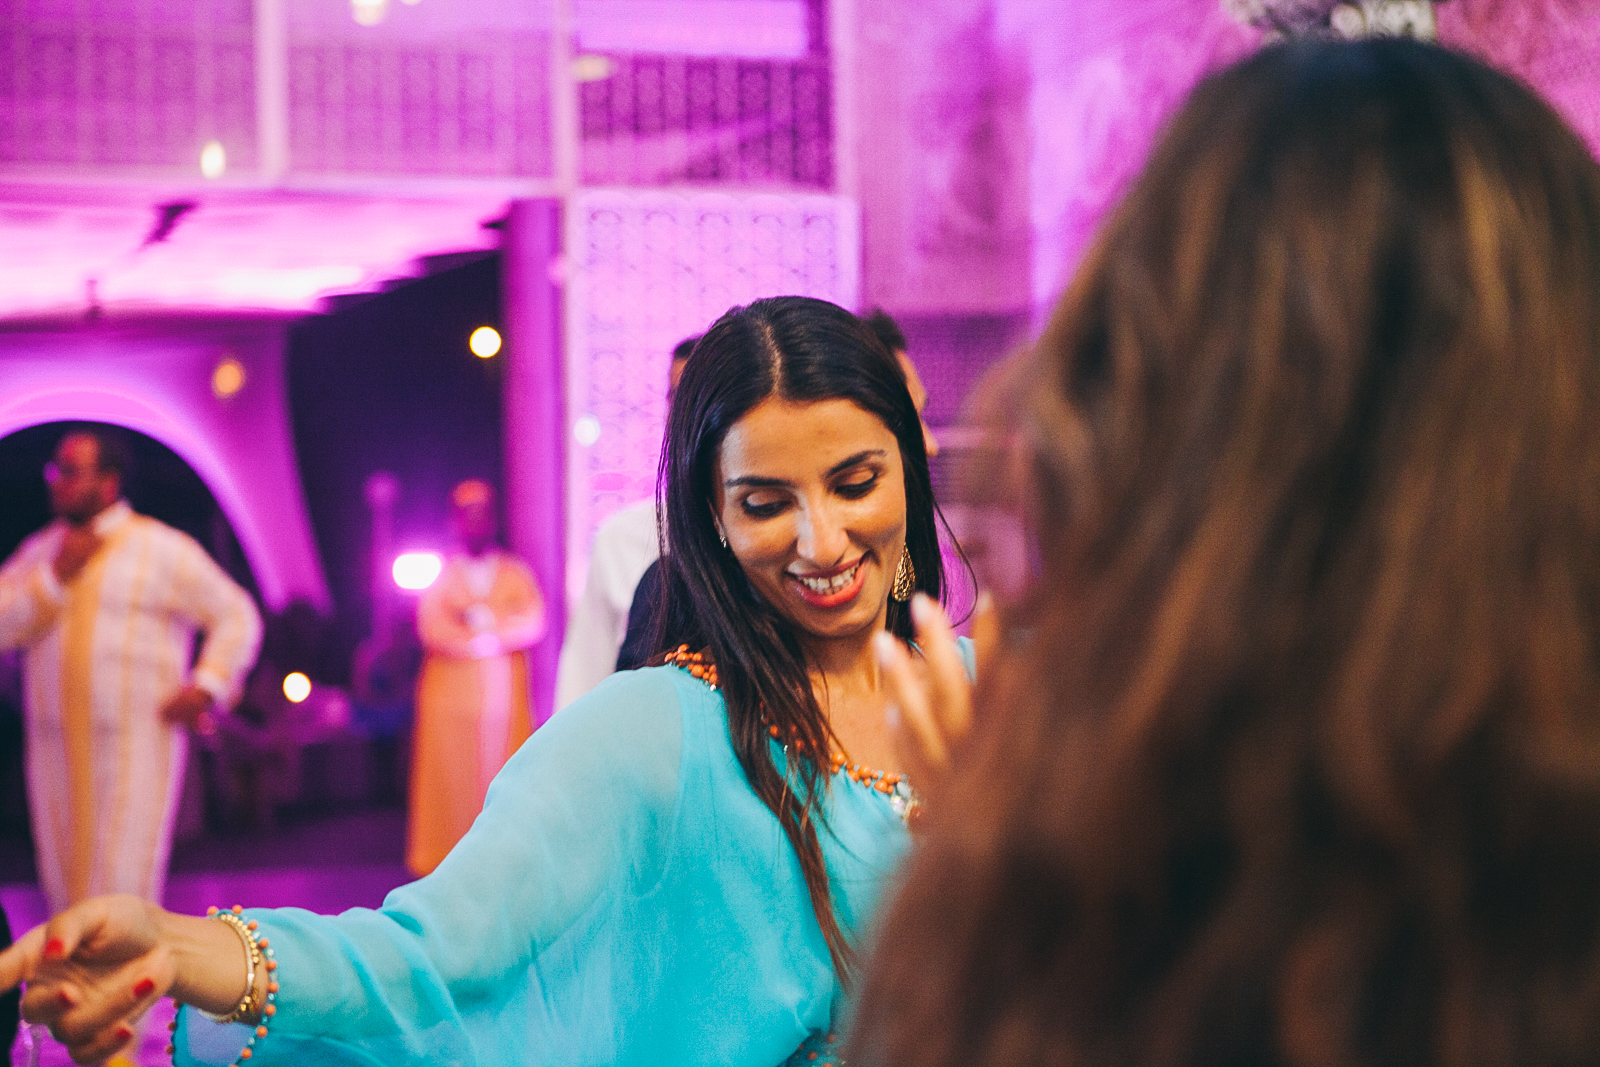 traditional_moroccan_wedding_photographry_casablanca_morocco_houda_vivek_ebony_siovhan_bokeh_photography_127.jpg